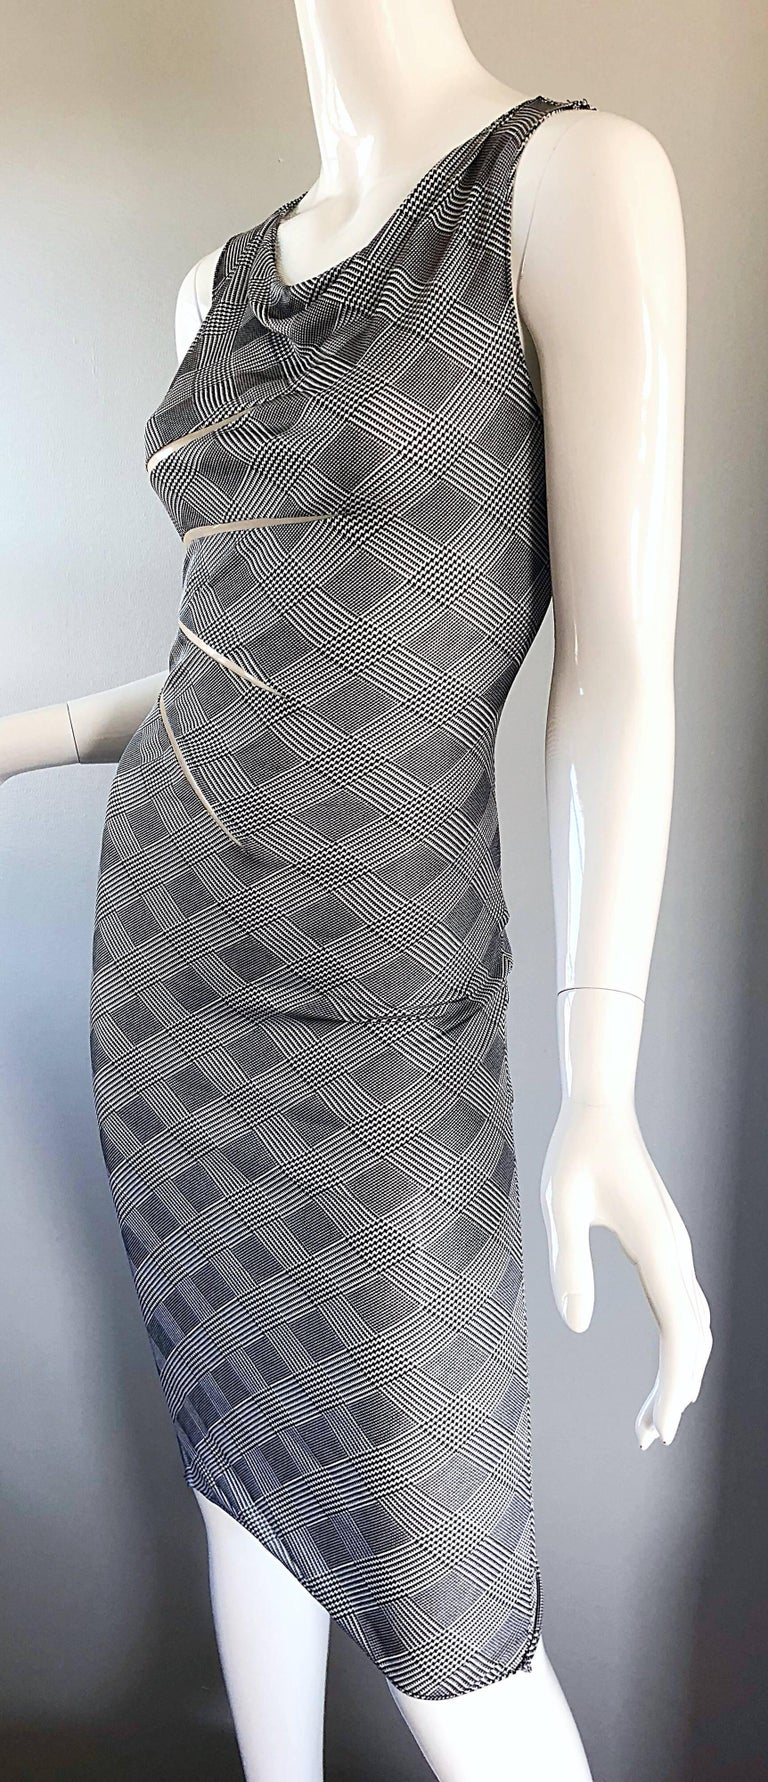 Women's Gianni Versace Couture Rare S / S 1998 Vintage Black and White Cut - Out Dress For Sale